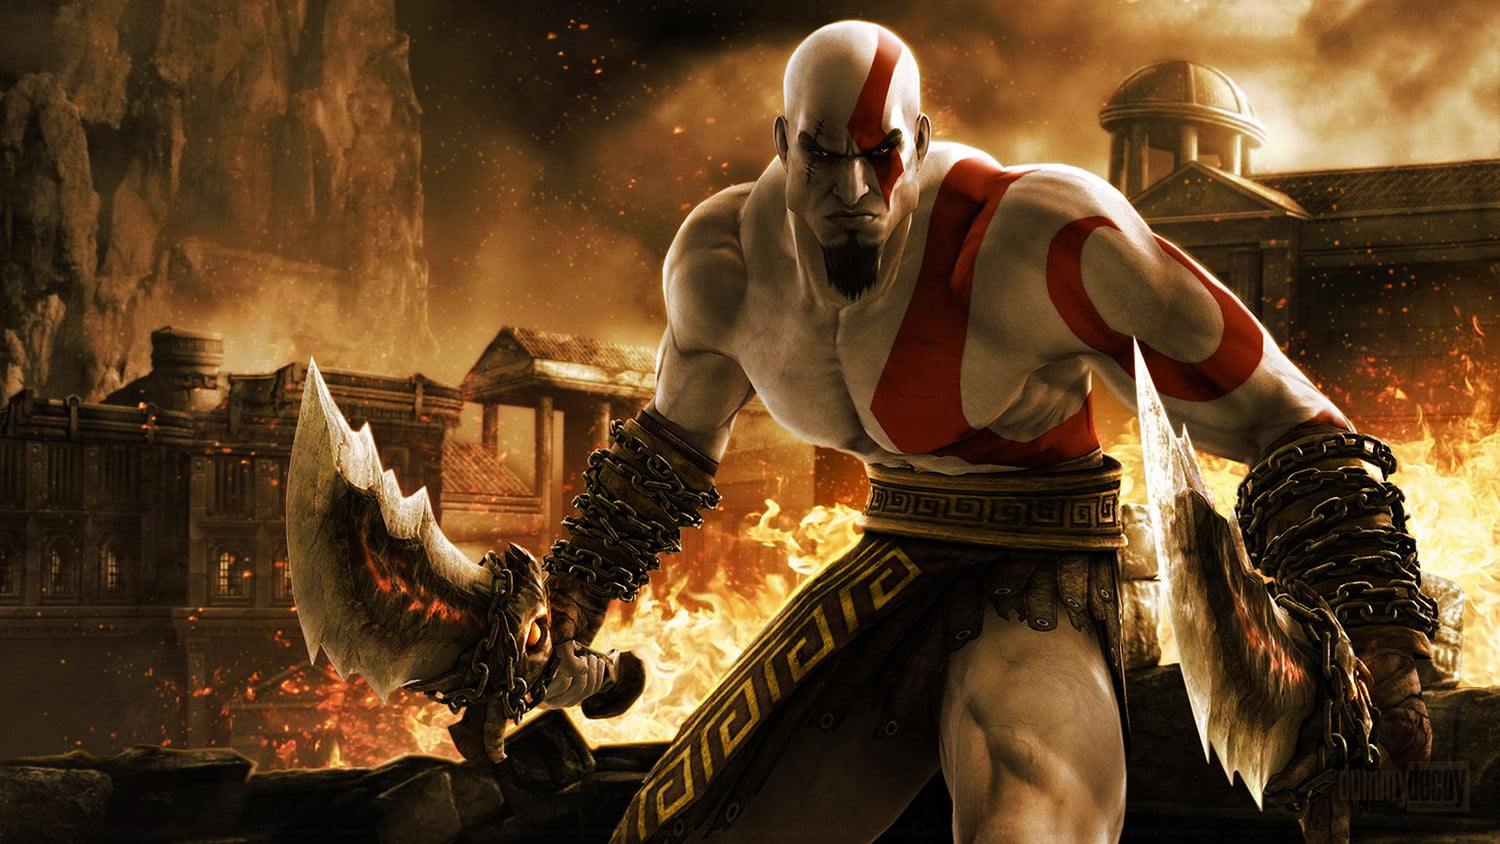 The Original God Of War Was An Intellectual Brute